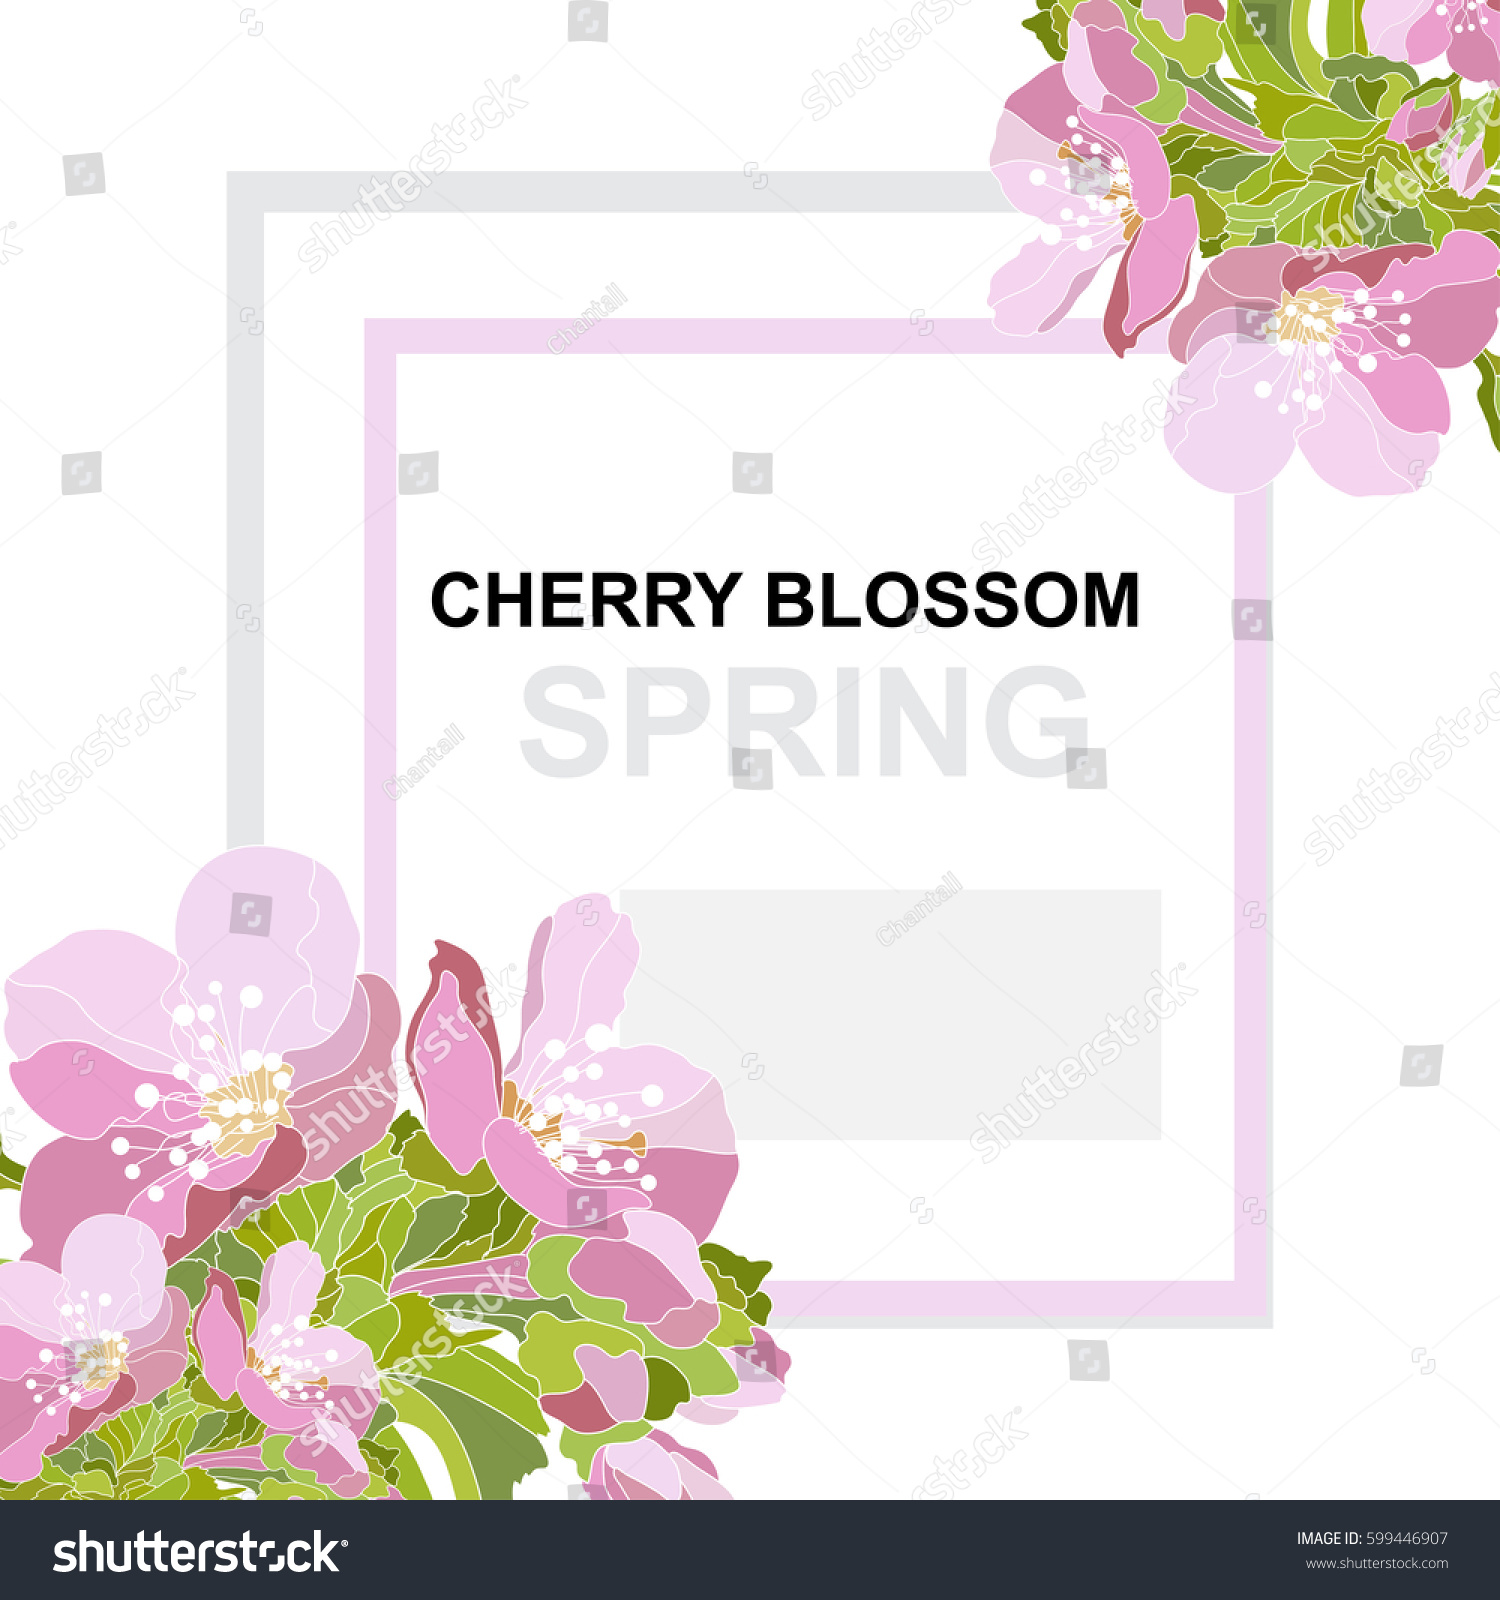 Elegant card decorative cherry blossom flowers stock for Classy mothers day cards